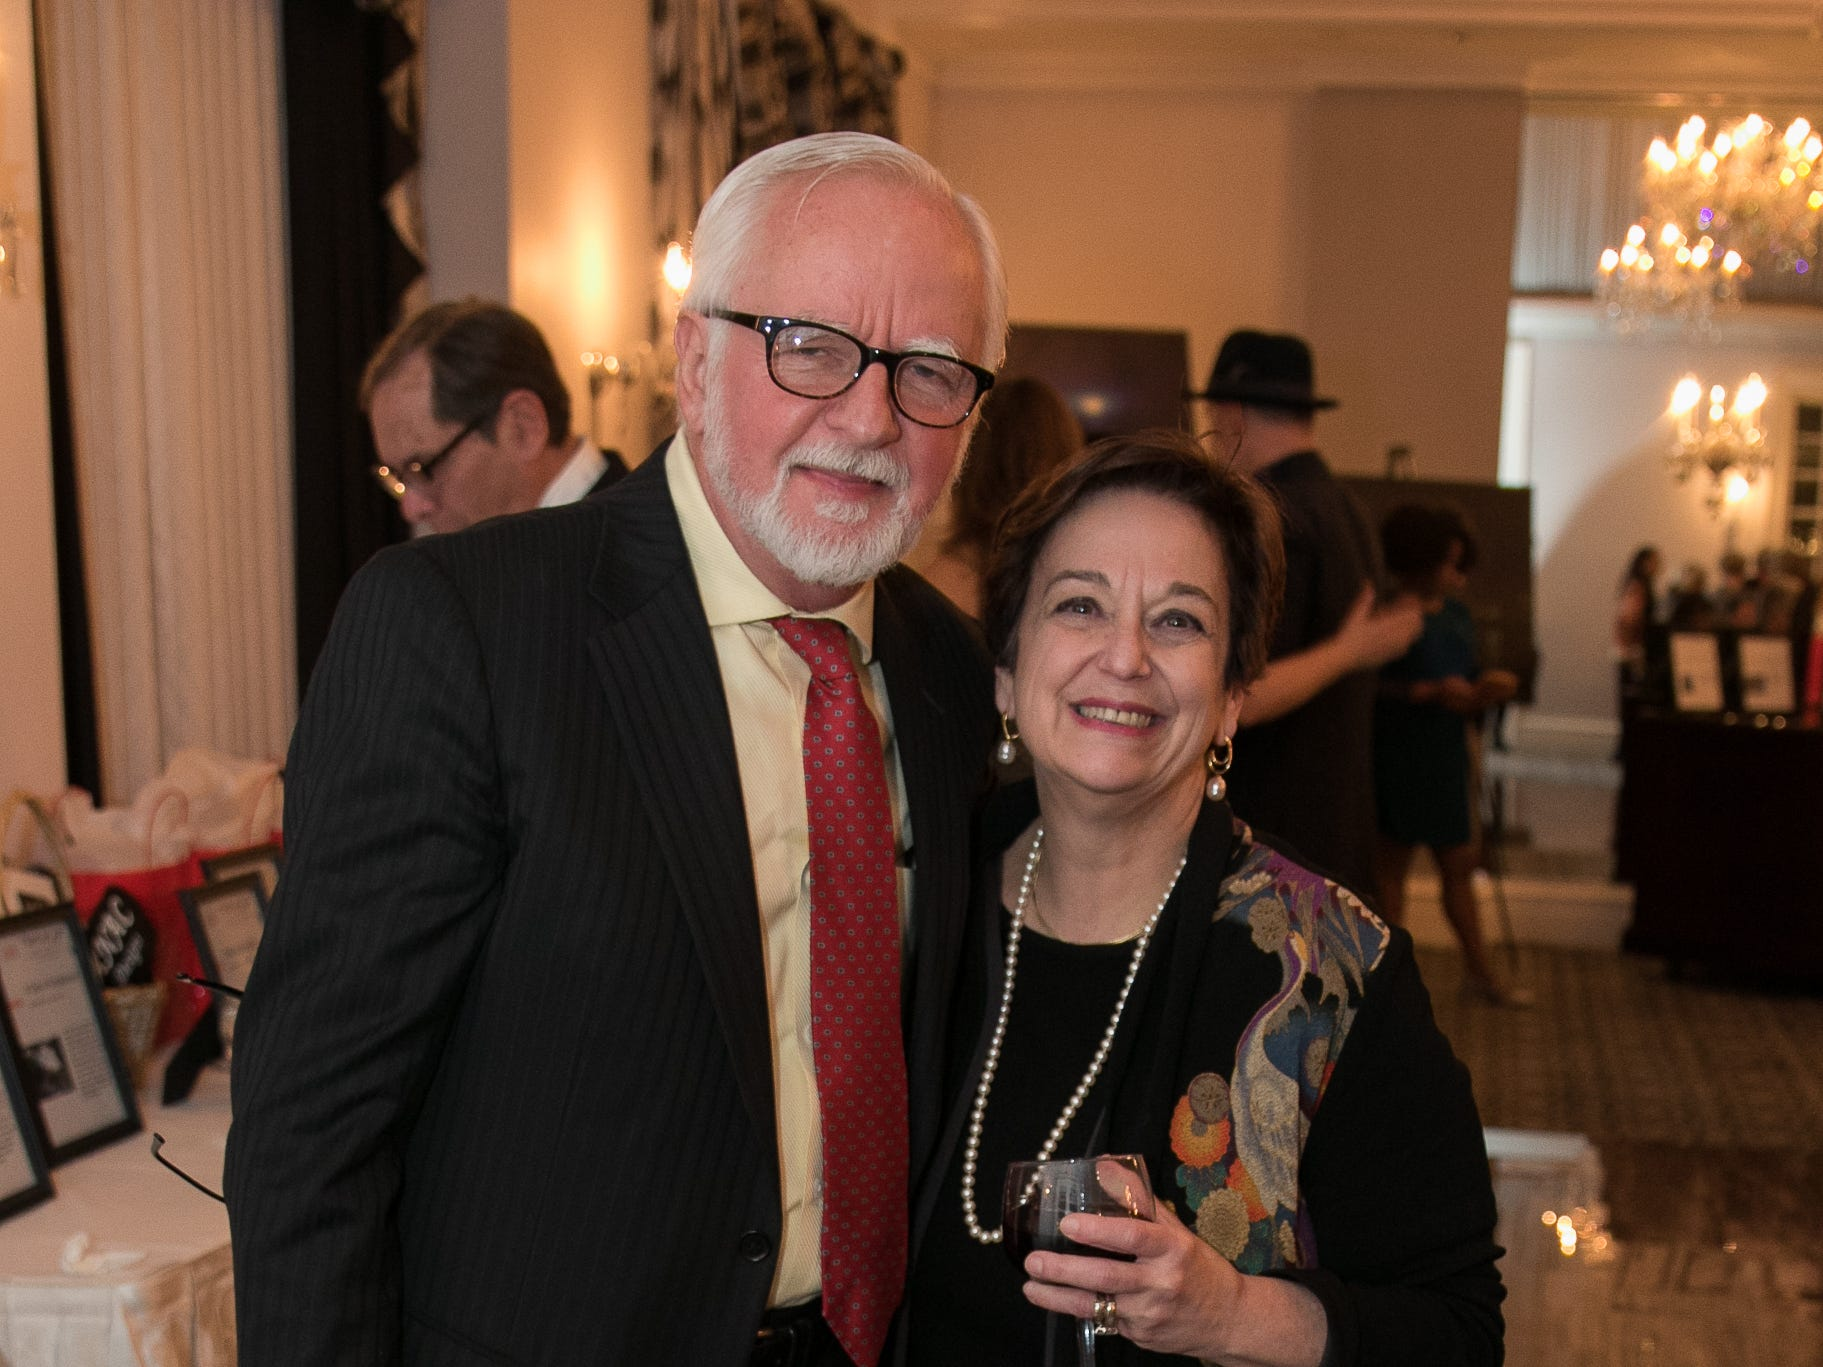 Hans Lehmann, Jan Philips. The Bergen Volunteer Center celebrated its 10th anniversary of the Bergen LEADS program at The Hearts of Gold Dinner and Auction at the Stony Hill Inn in Hackensack. 11/08/2018